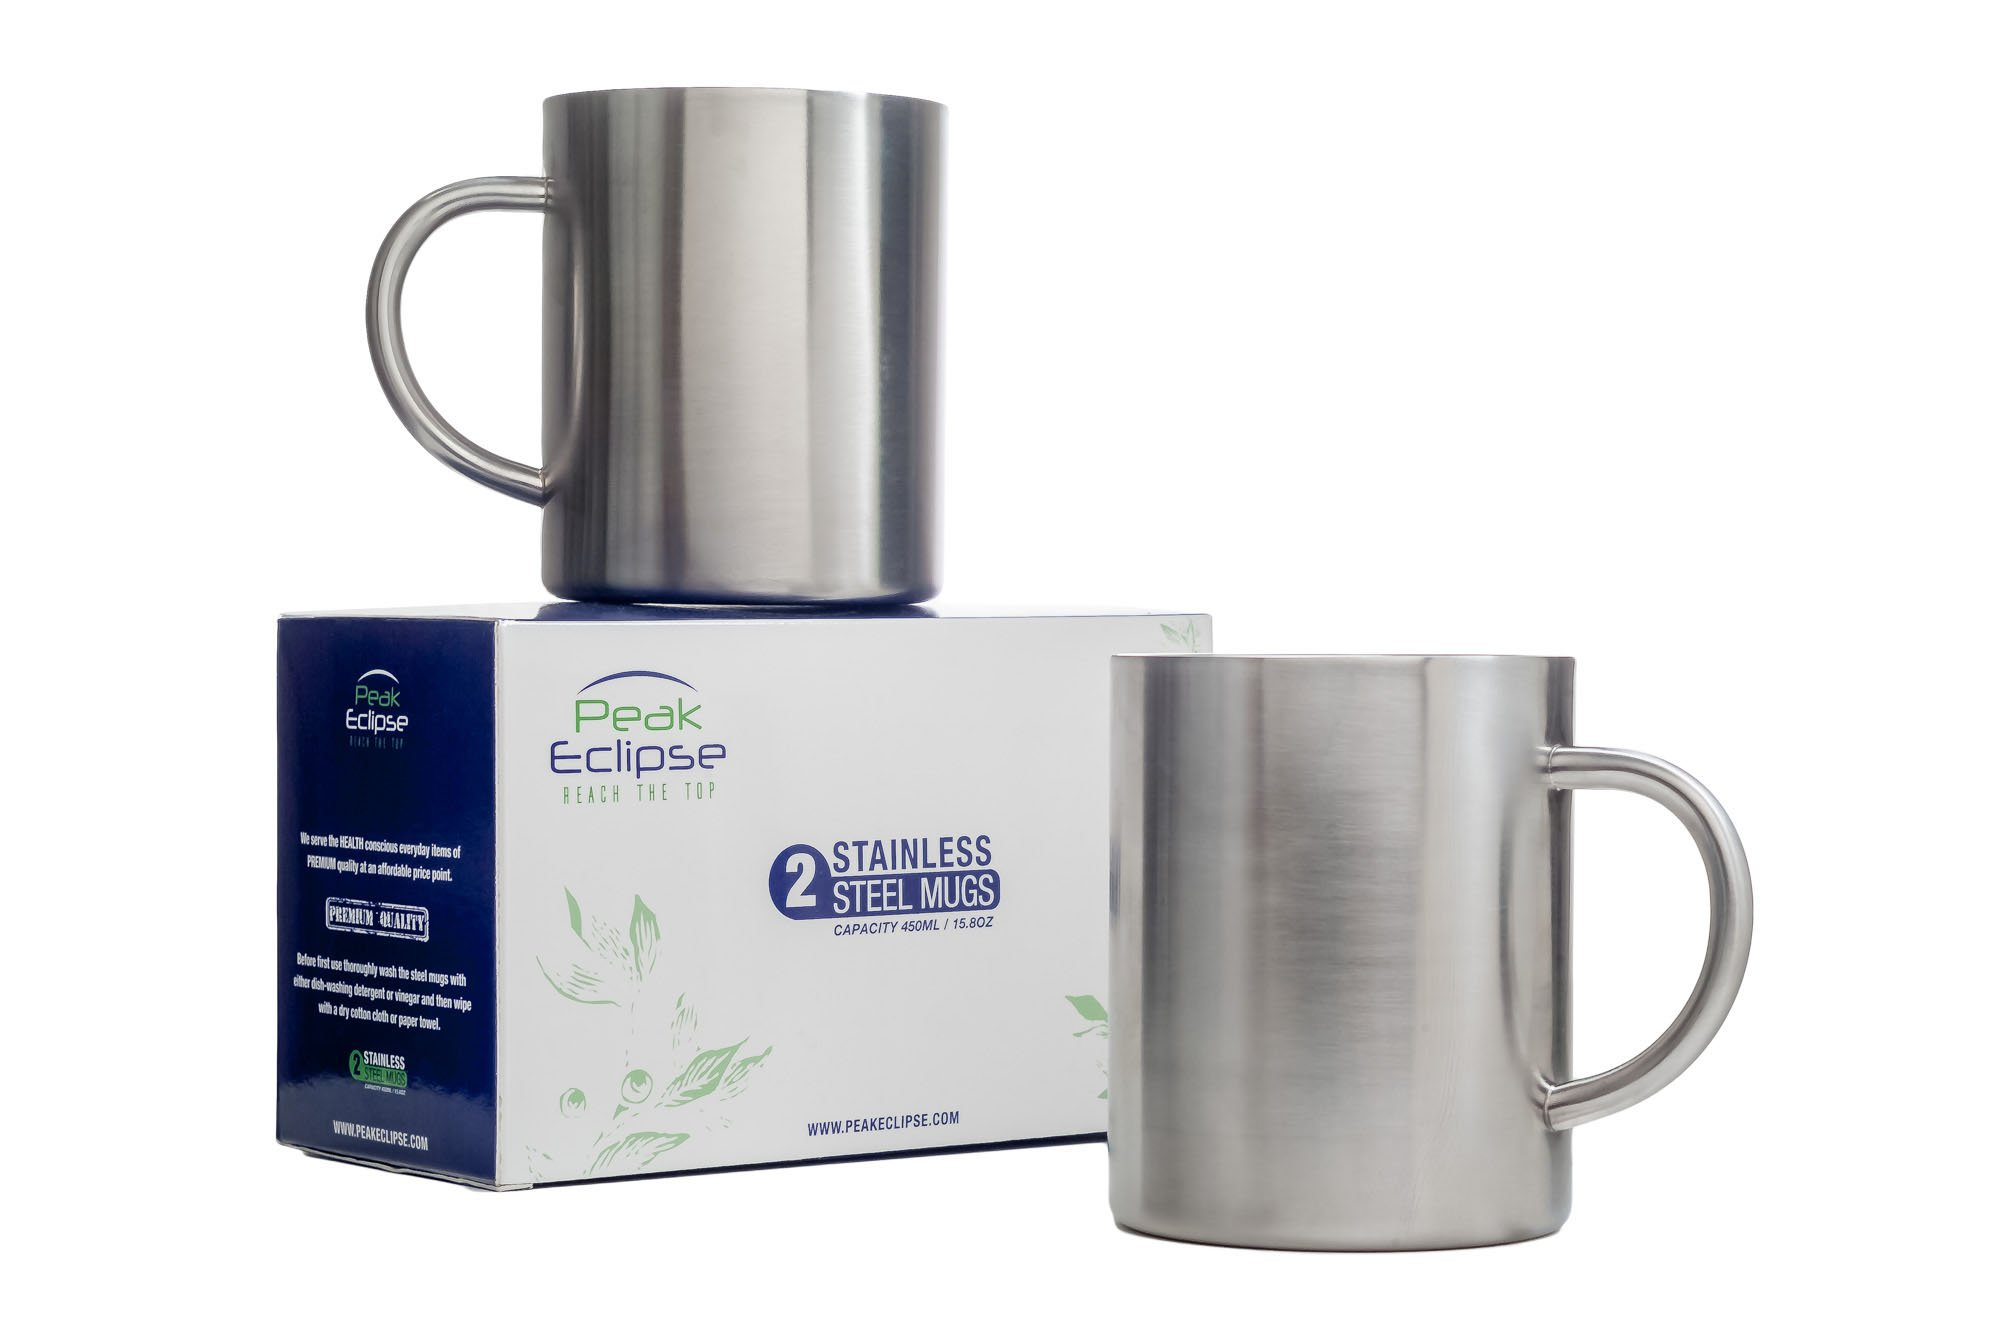 Stainless Steel Mugs 15 oz - 450ml - Set of 2 - Double Wall Insulated - Perfect for Coffee Tea Beer Travel - Keeps drinks Hot or Cold for longer